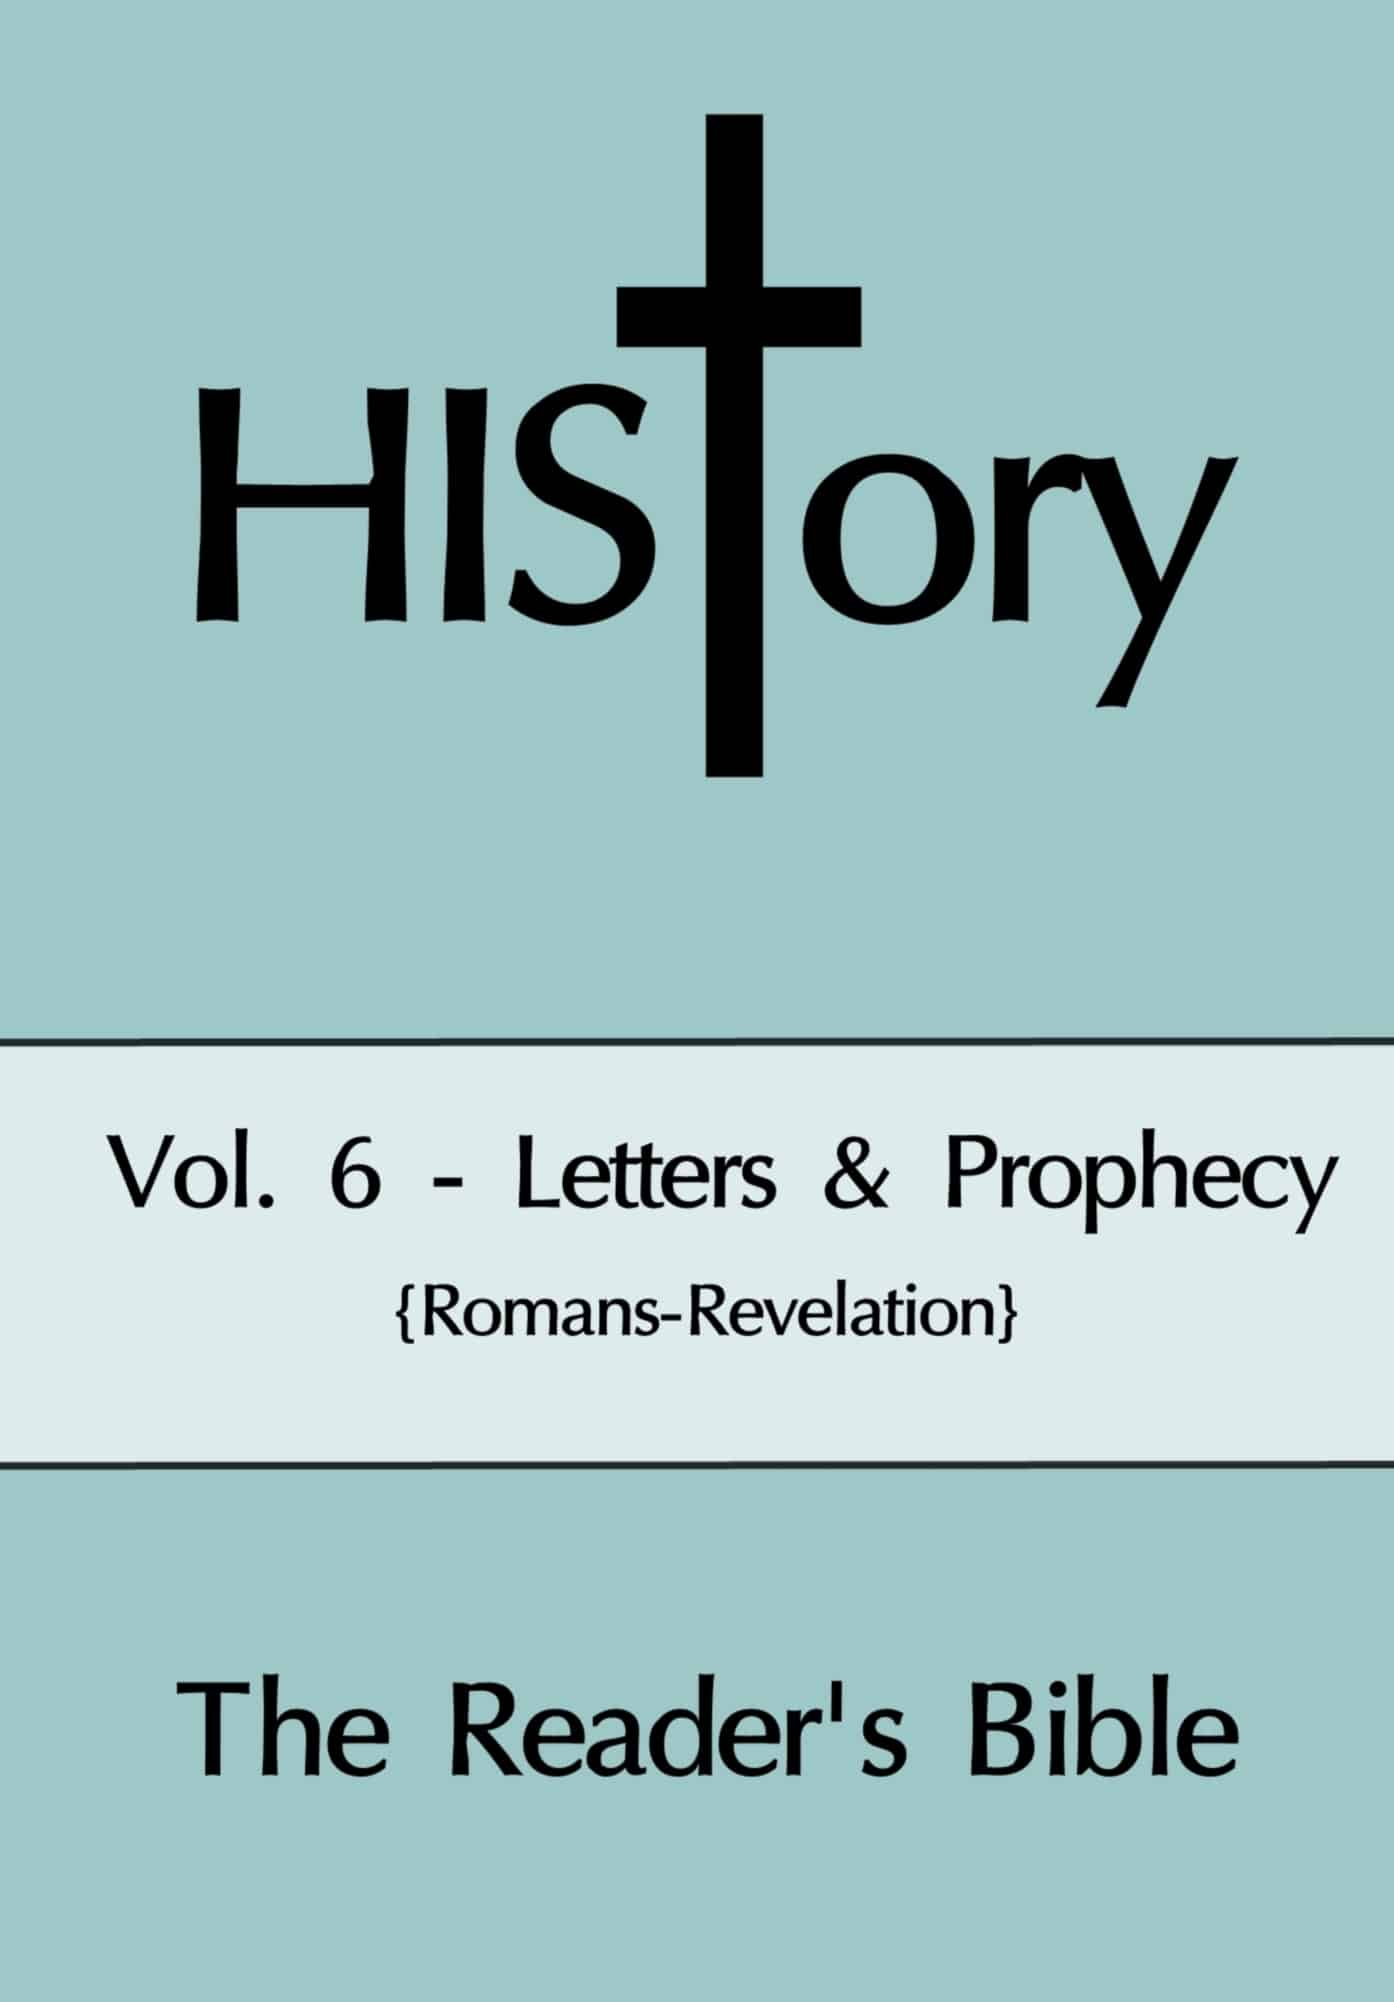 HIStory: The Reader's Bible Vol. 6-Letters & Prophecy (Softcover)